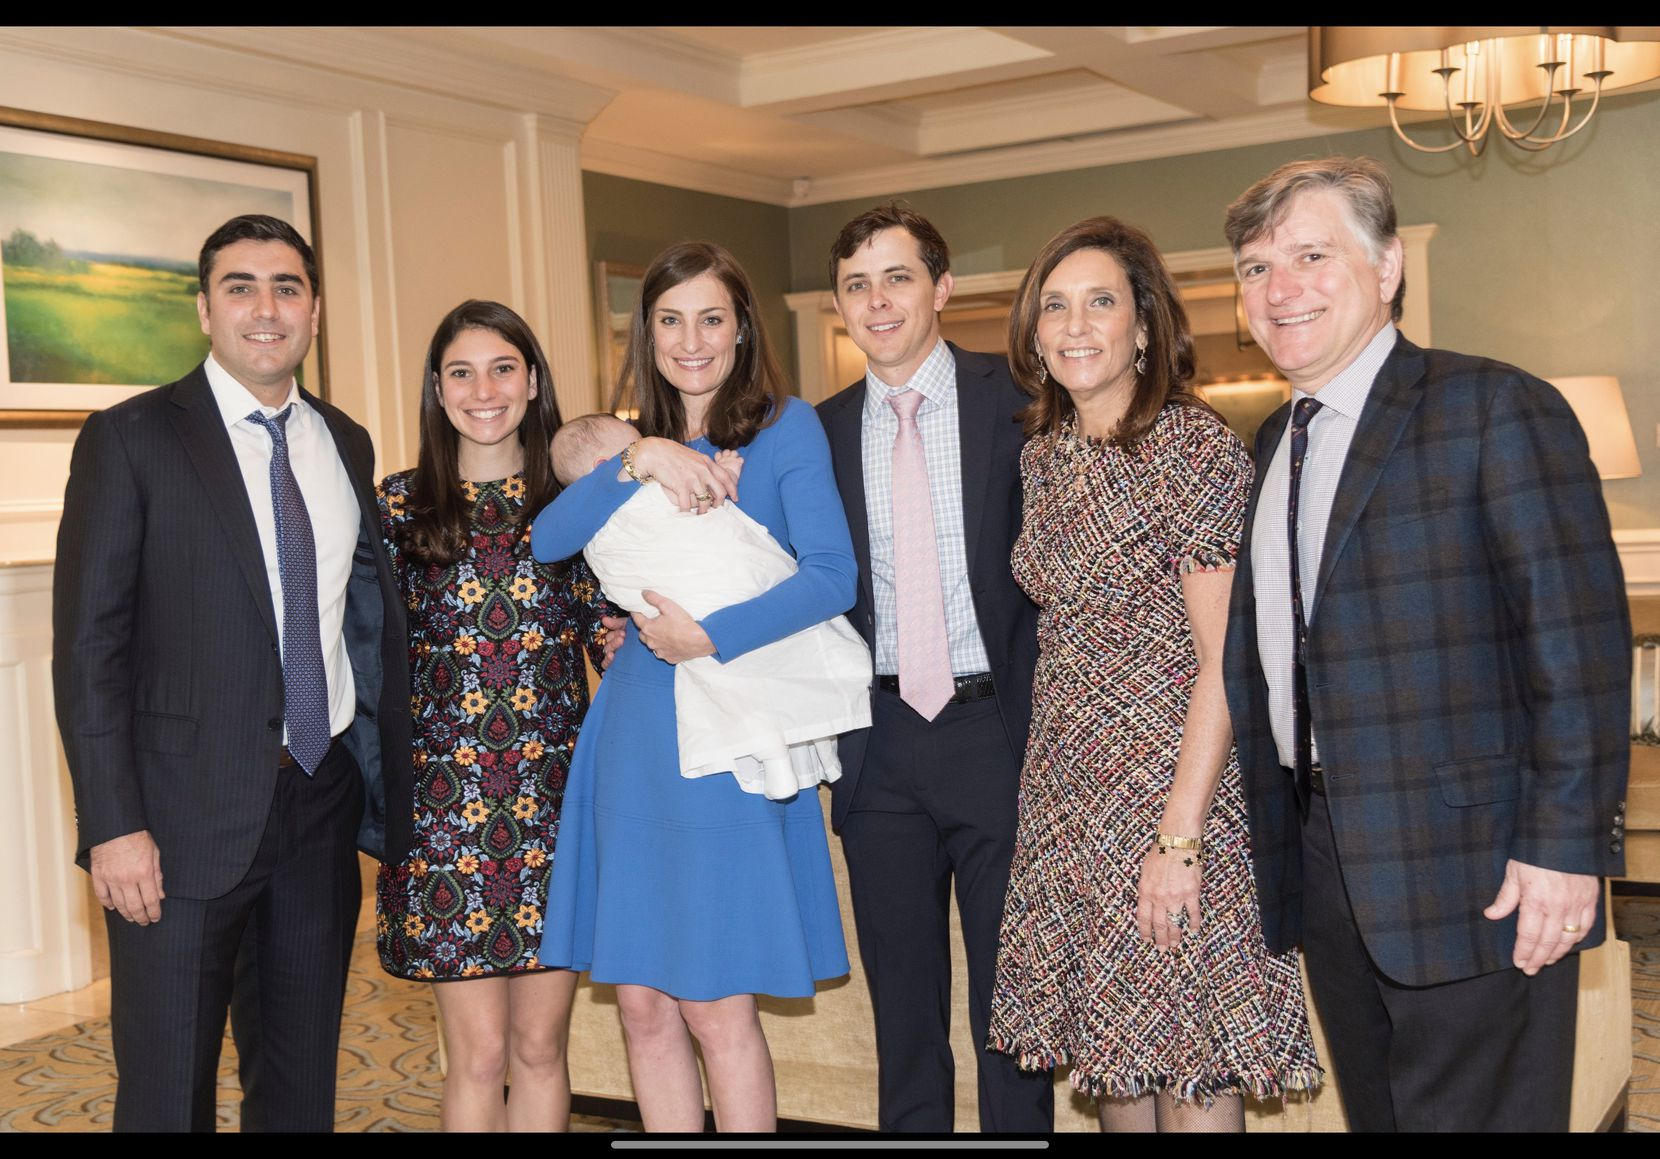 Maryann Mihalopoulos' family includes (from left) son Arthur Brousseau, youngest daughter Meredith Mihalopoulos, oldest daughter Alexandra Brousseau Halbardier holding grandson Louis Halbardier, son-in-law Ford Halbardier, Maryann and husband Frank.